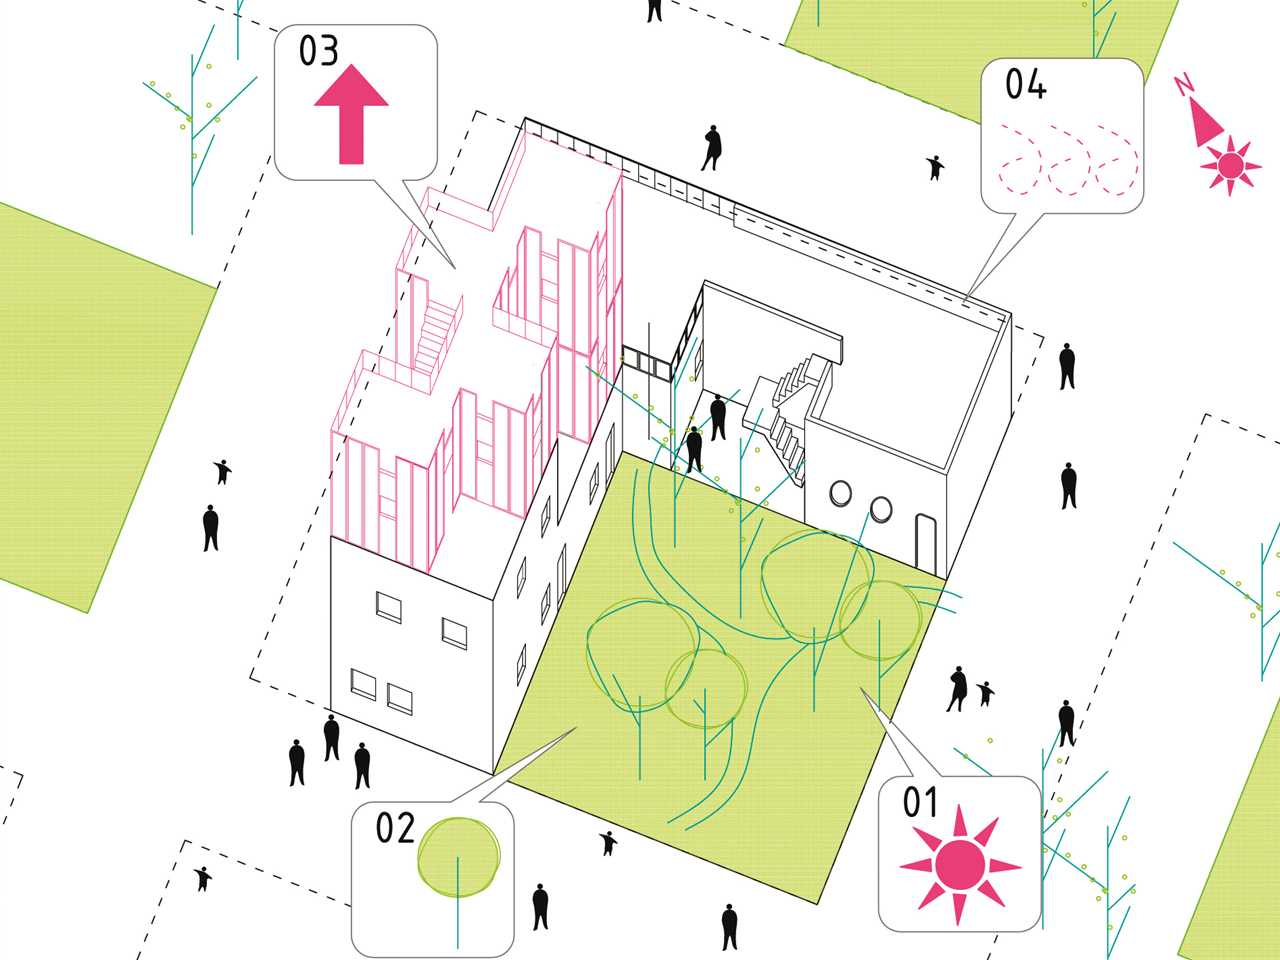 Project entry 2014 Europe – The Commons: Participatory urban neighborhood, Vienna, Austria